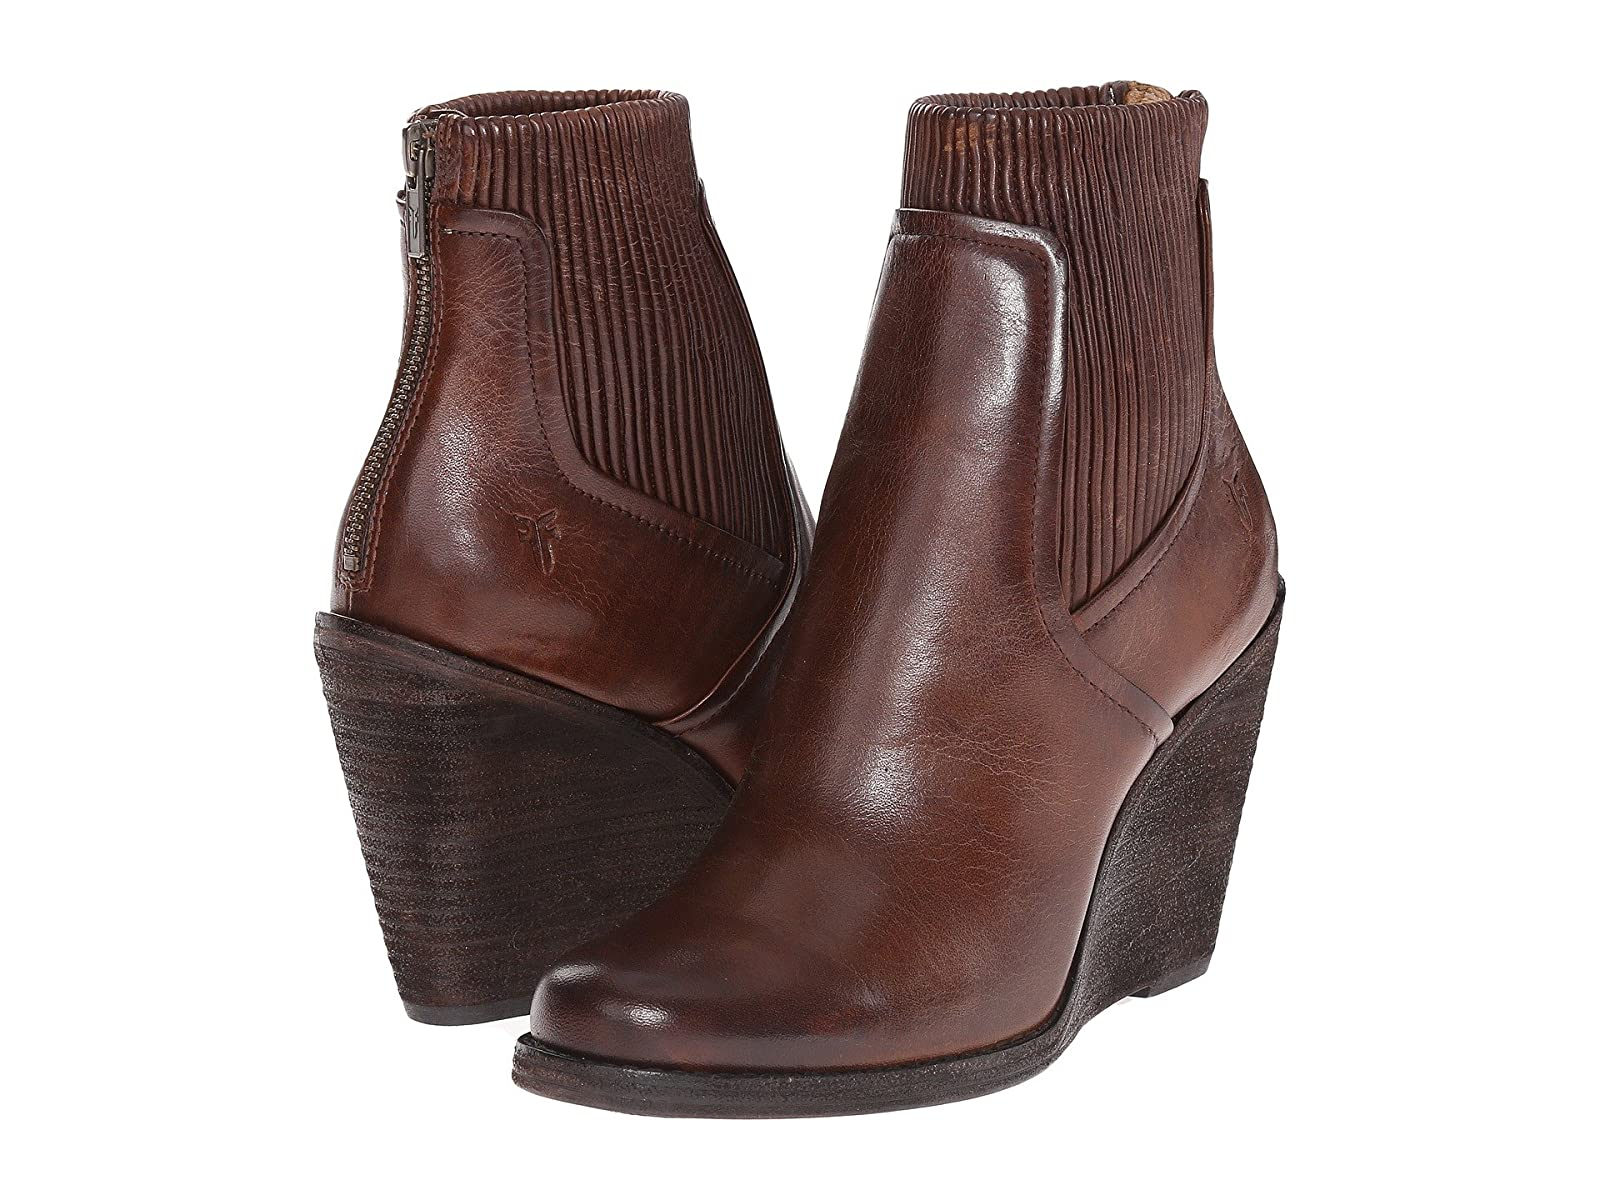 Frye Carrie Scrunch Back ZipCheap and distinctive eye-catching shoes